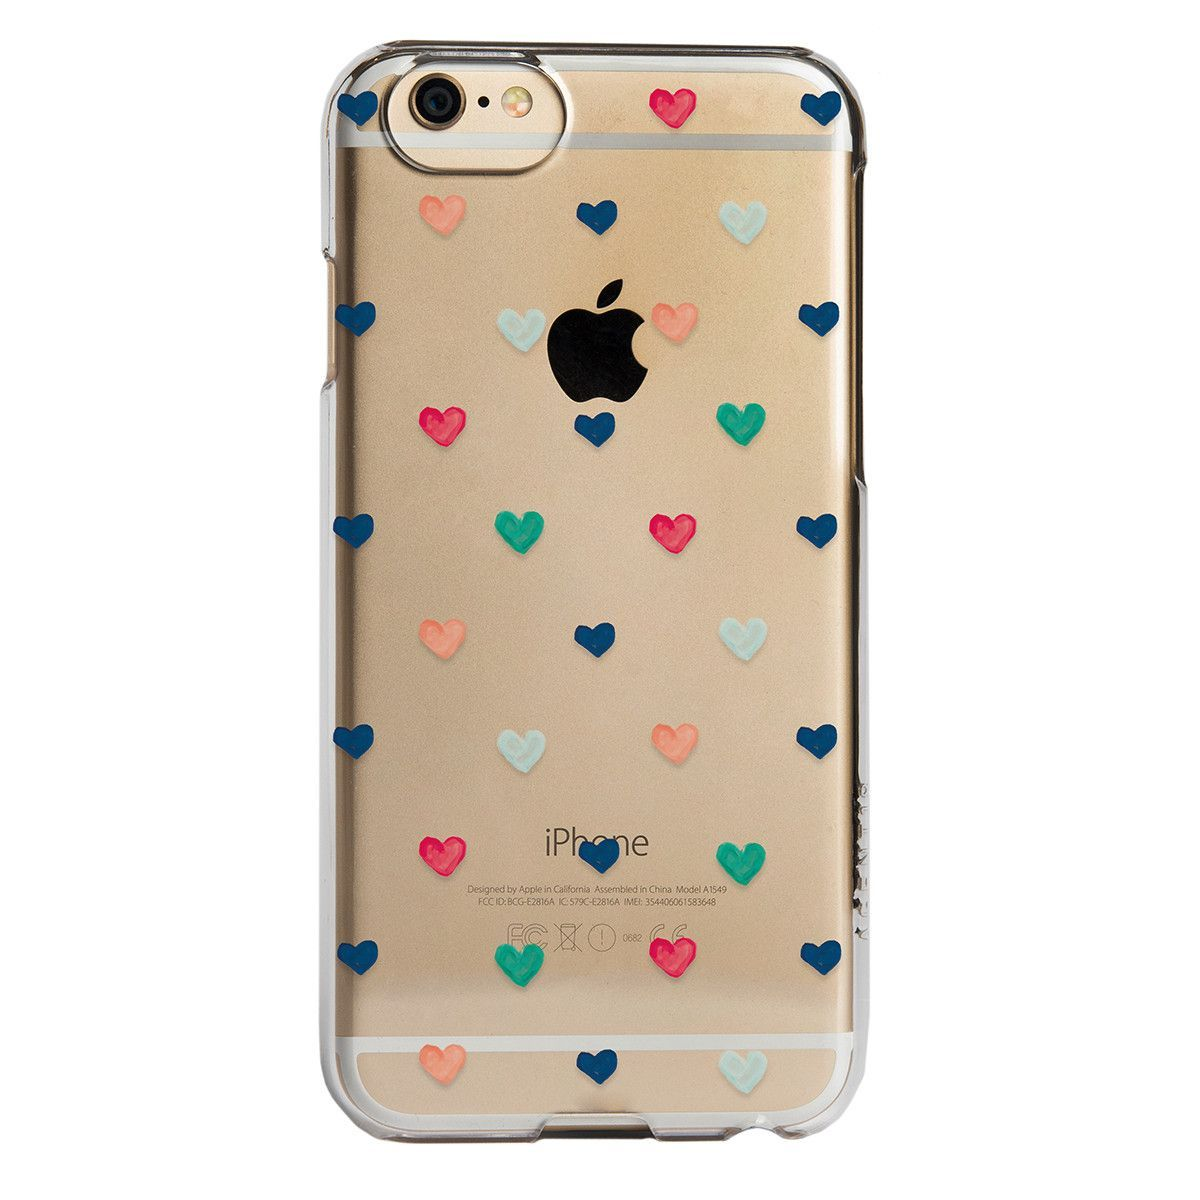 iPhone 6/6s SlimShield - Clear Hand Drawn Hearts